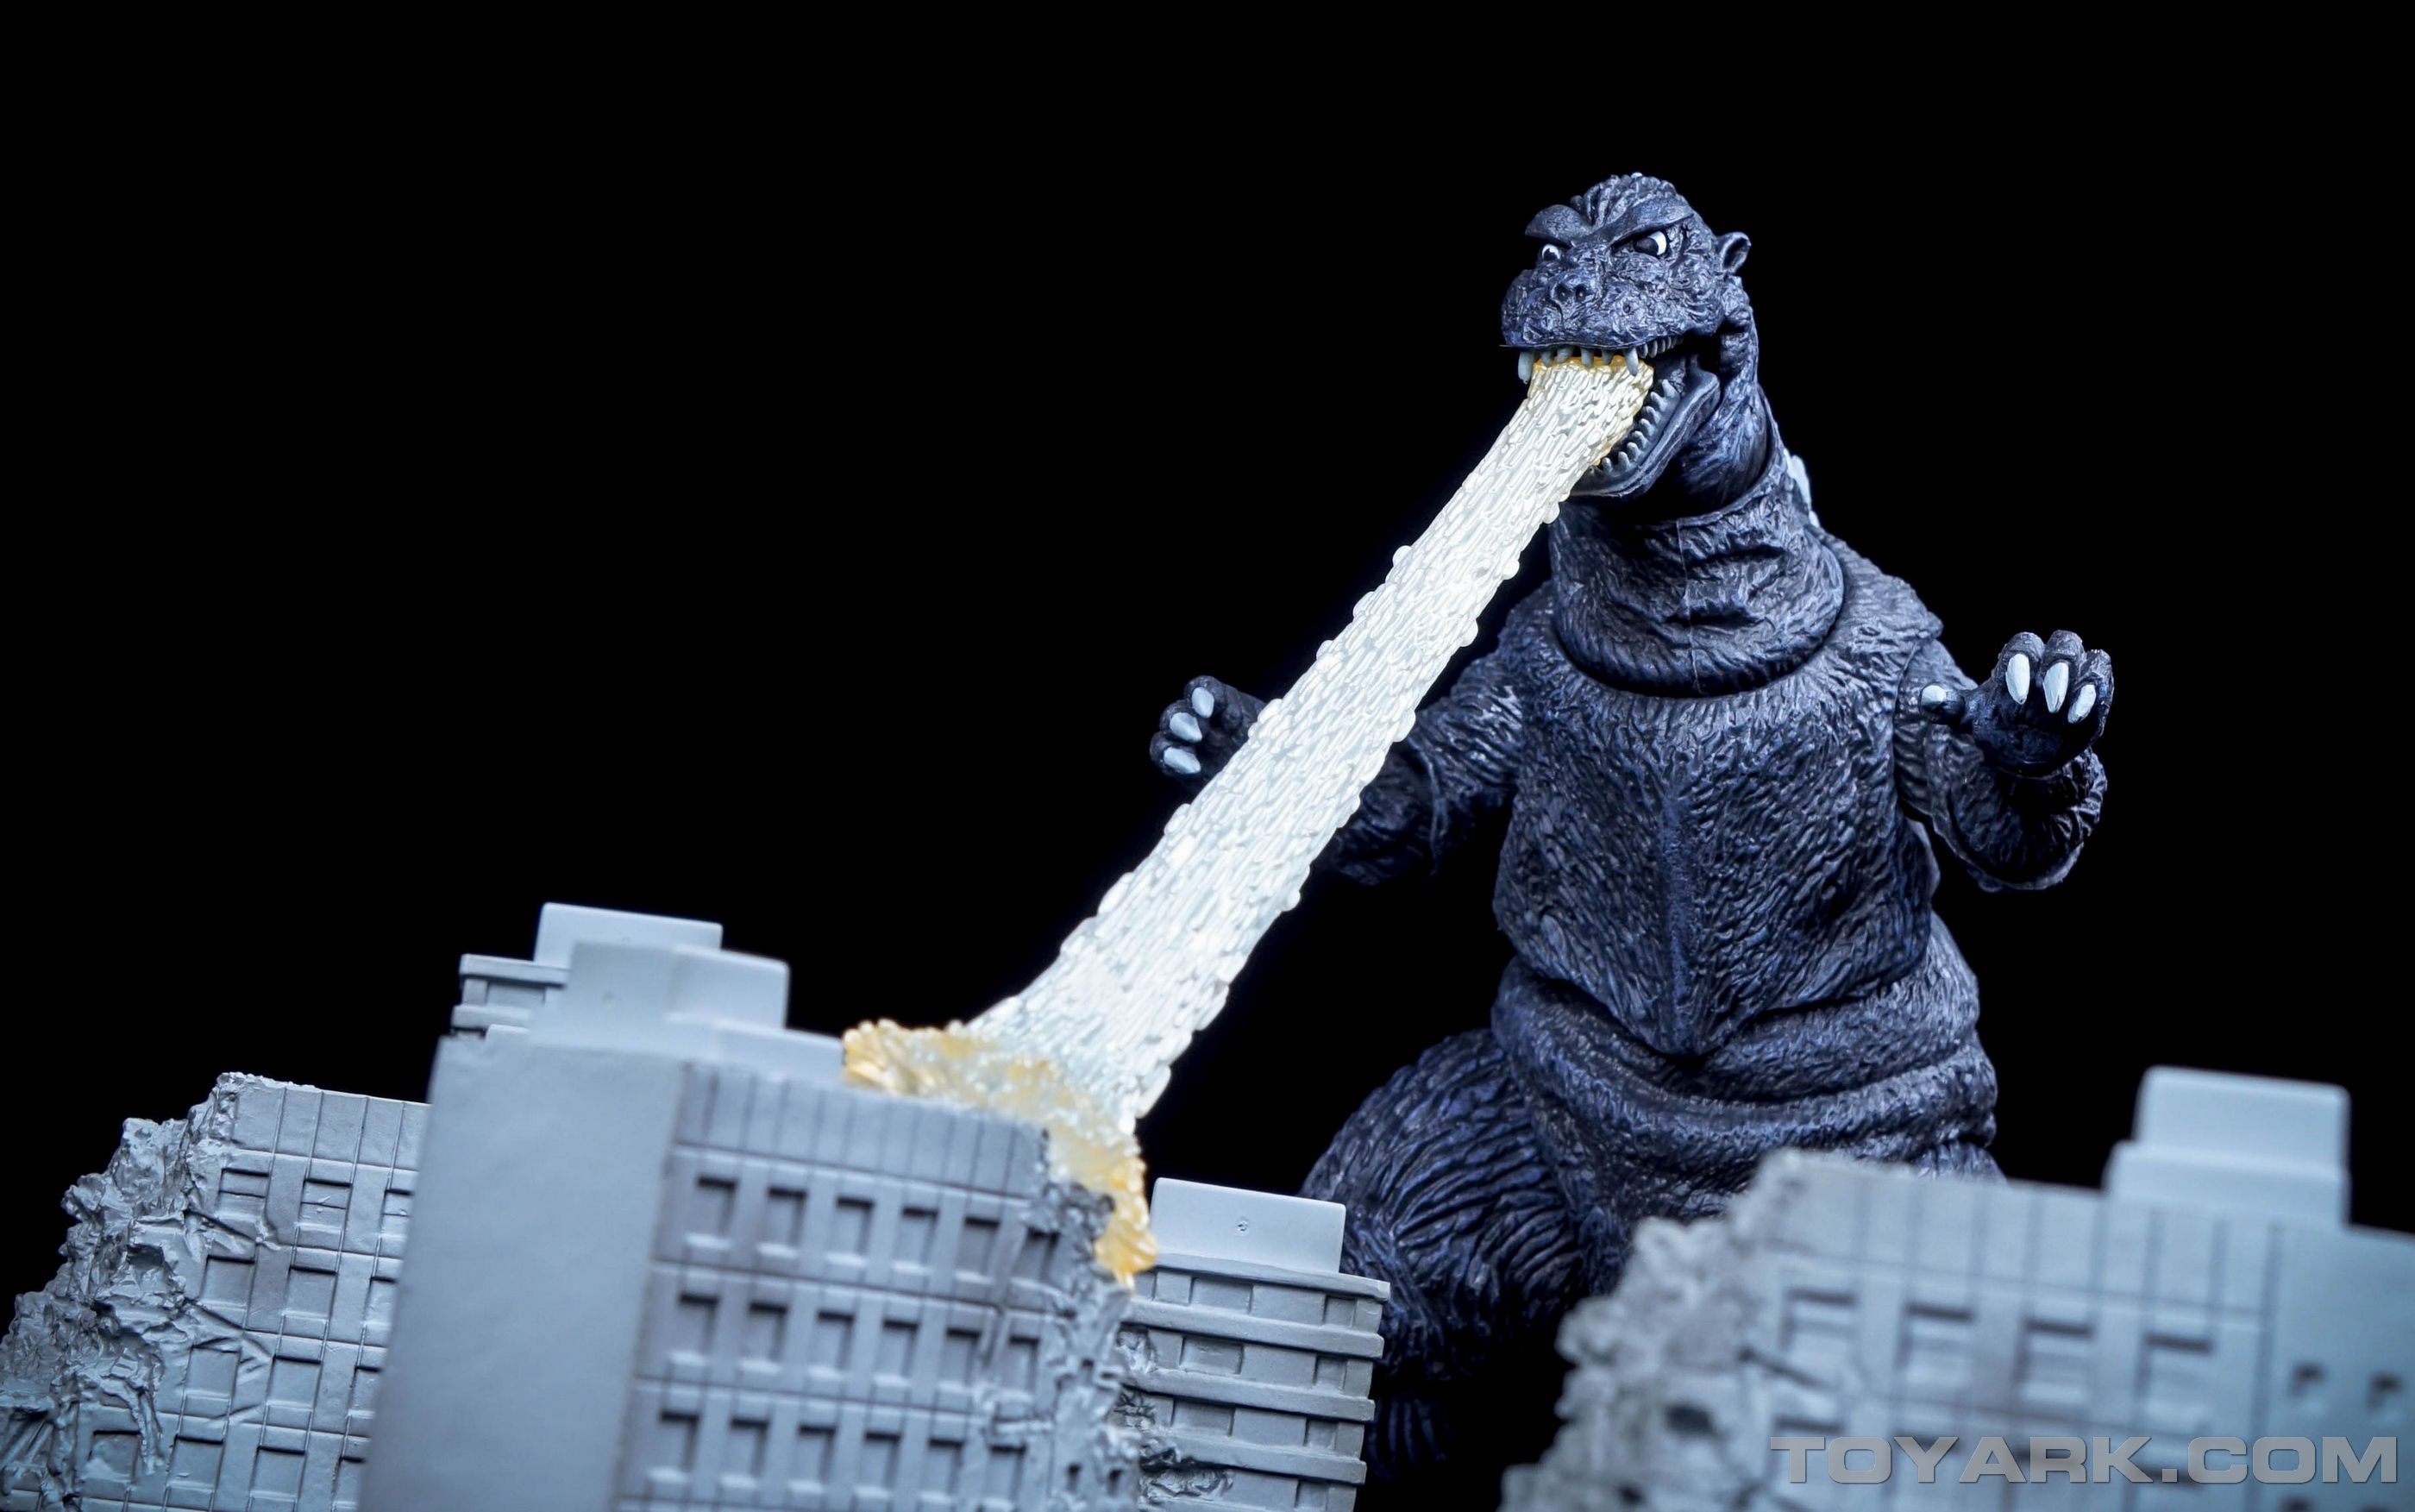 http://news.toyark.com/wp-content/uploads/sites/4/2015/09/NECA-1954-Godzilla-042.jpg